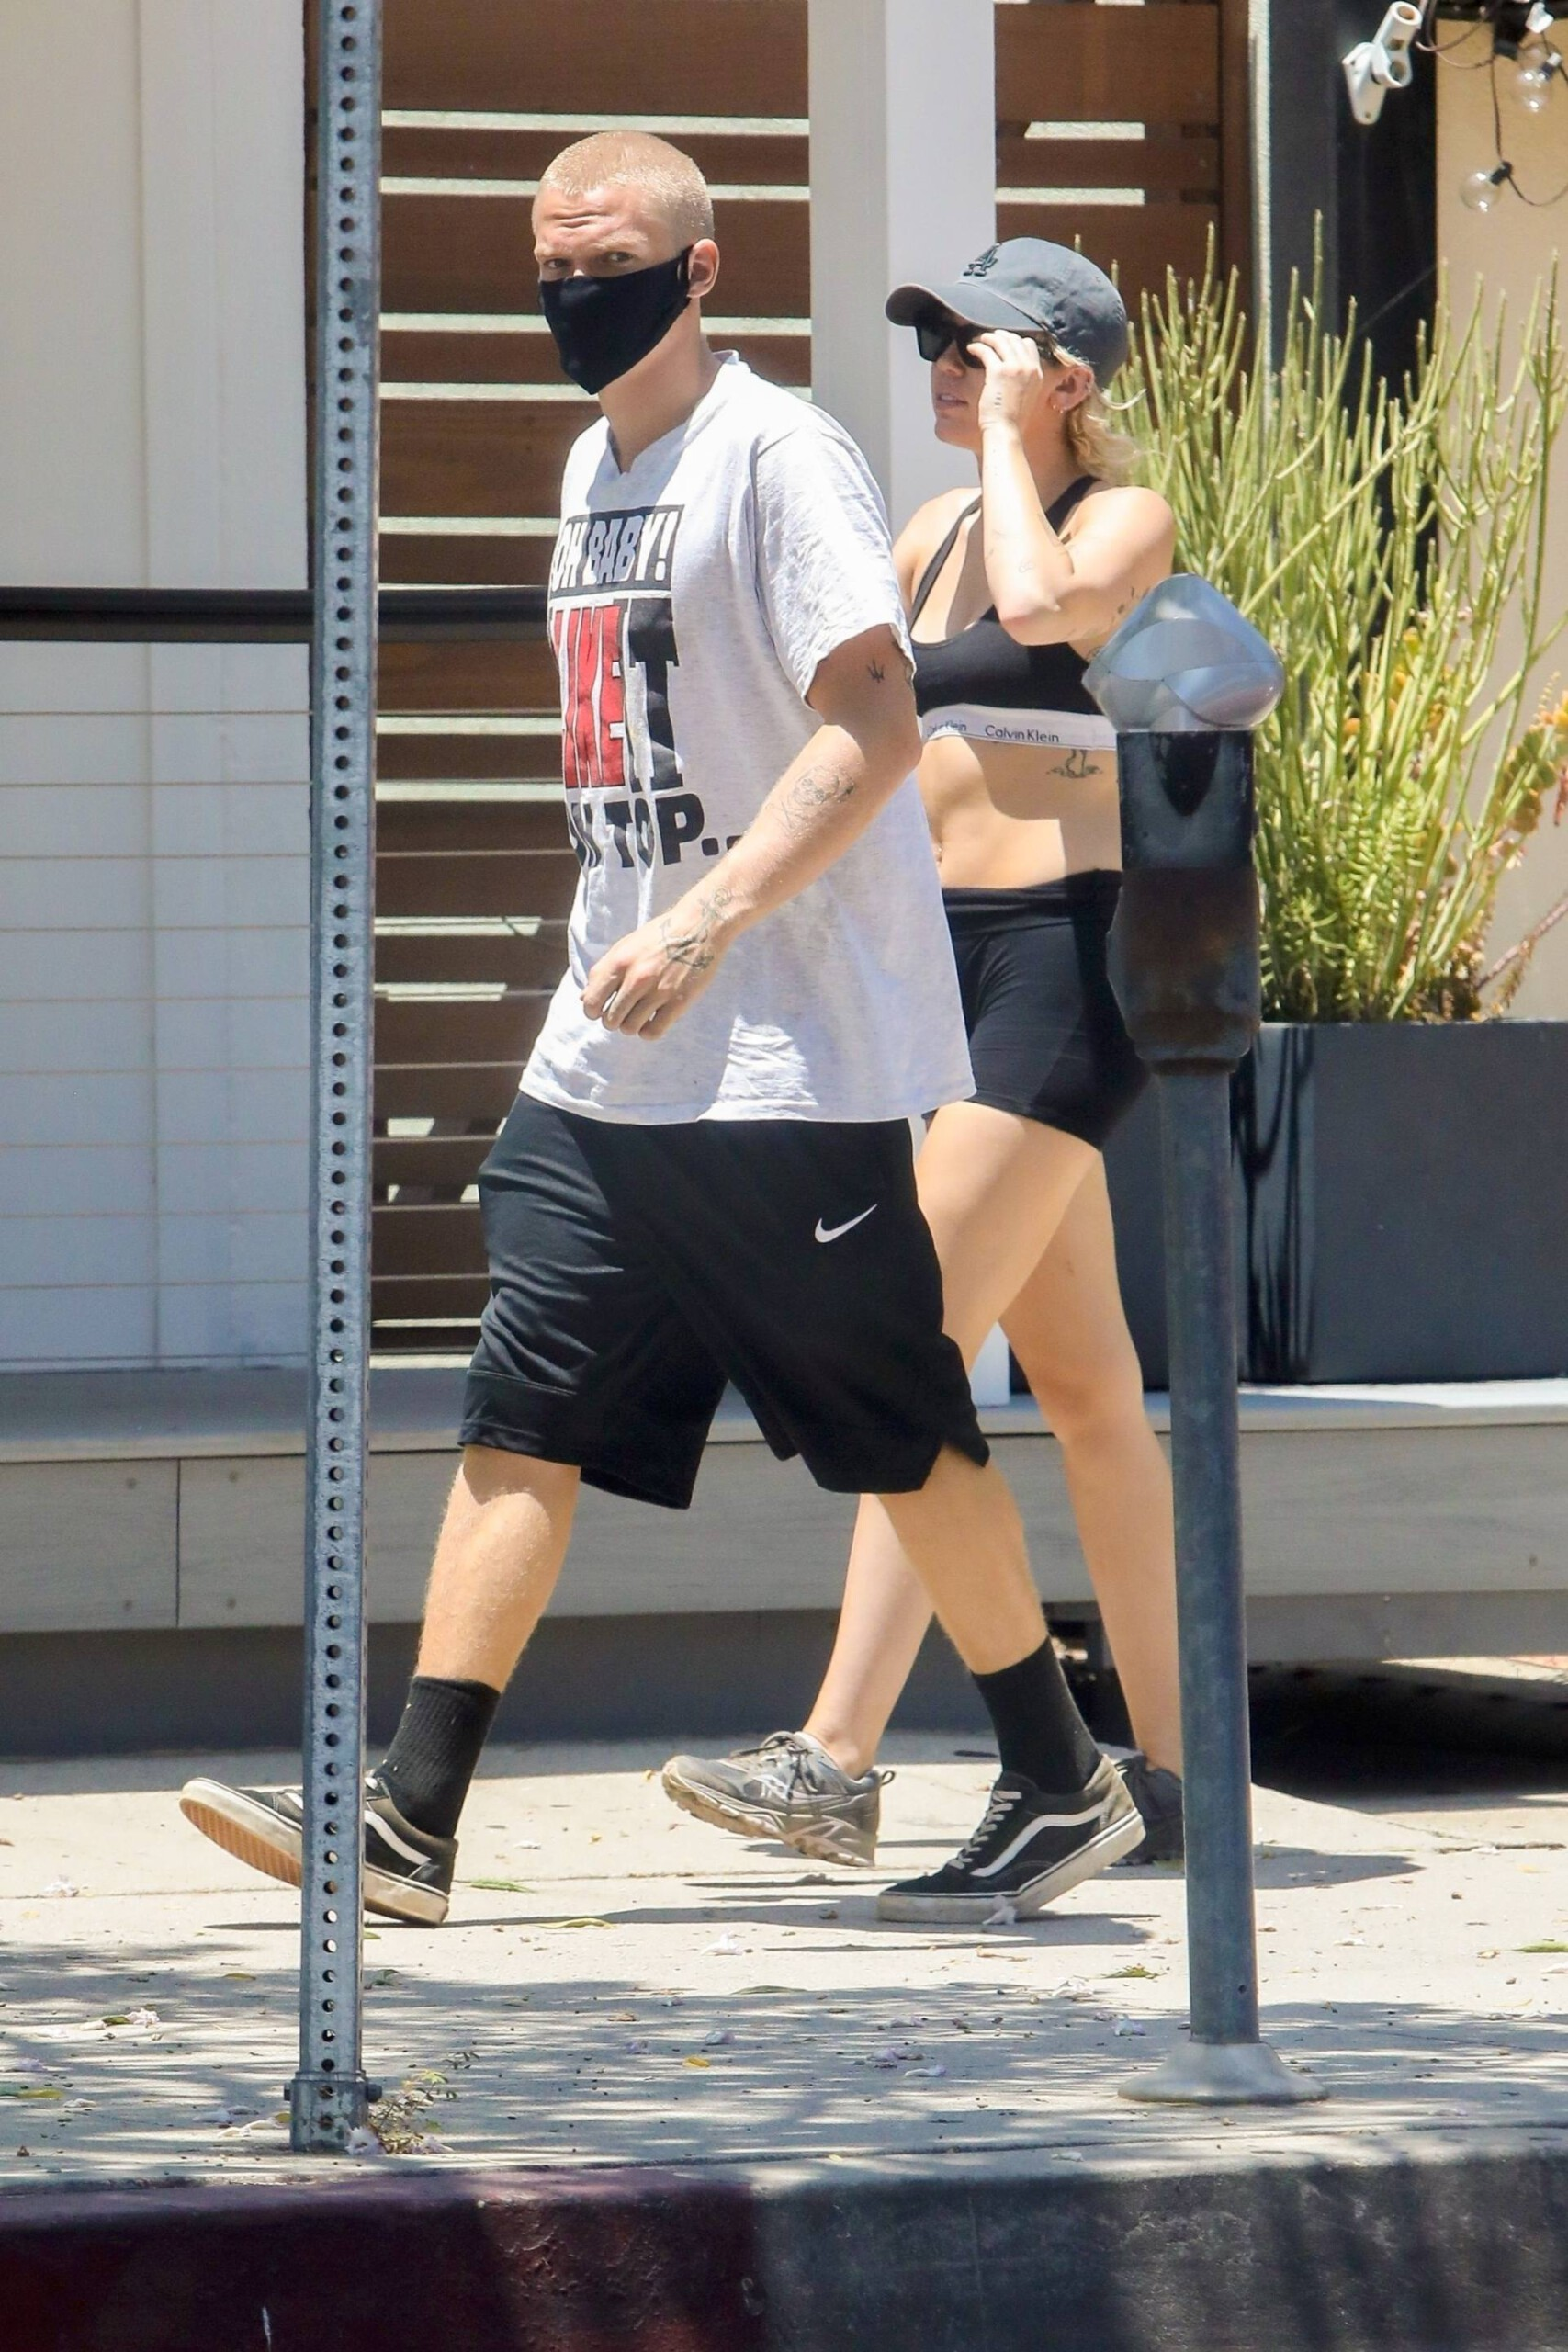 Miley Cyrus – Sexy Fit Body In Shorts And Sports Bra Out In Los Angeles 0004